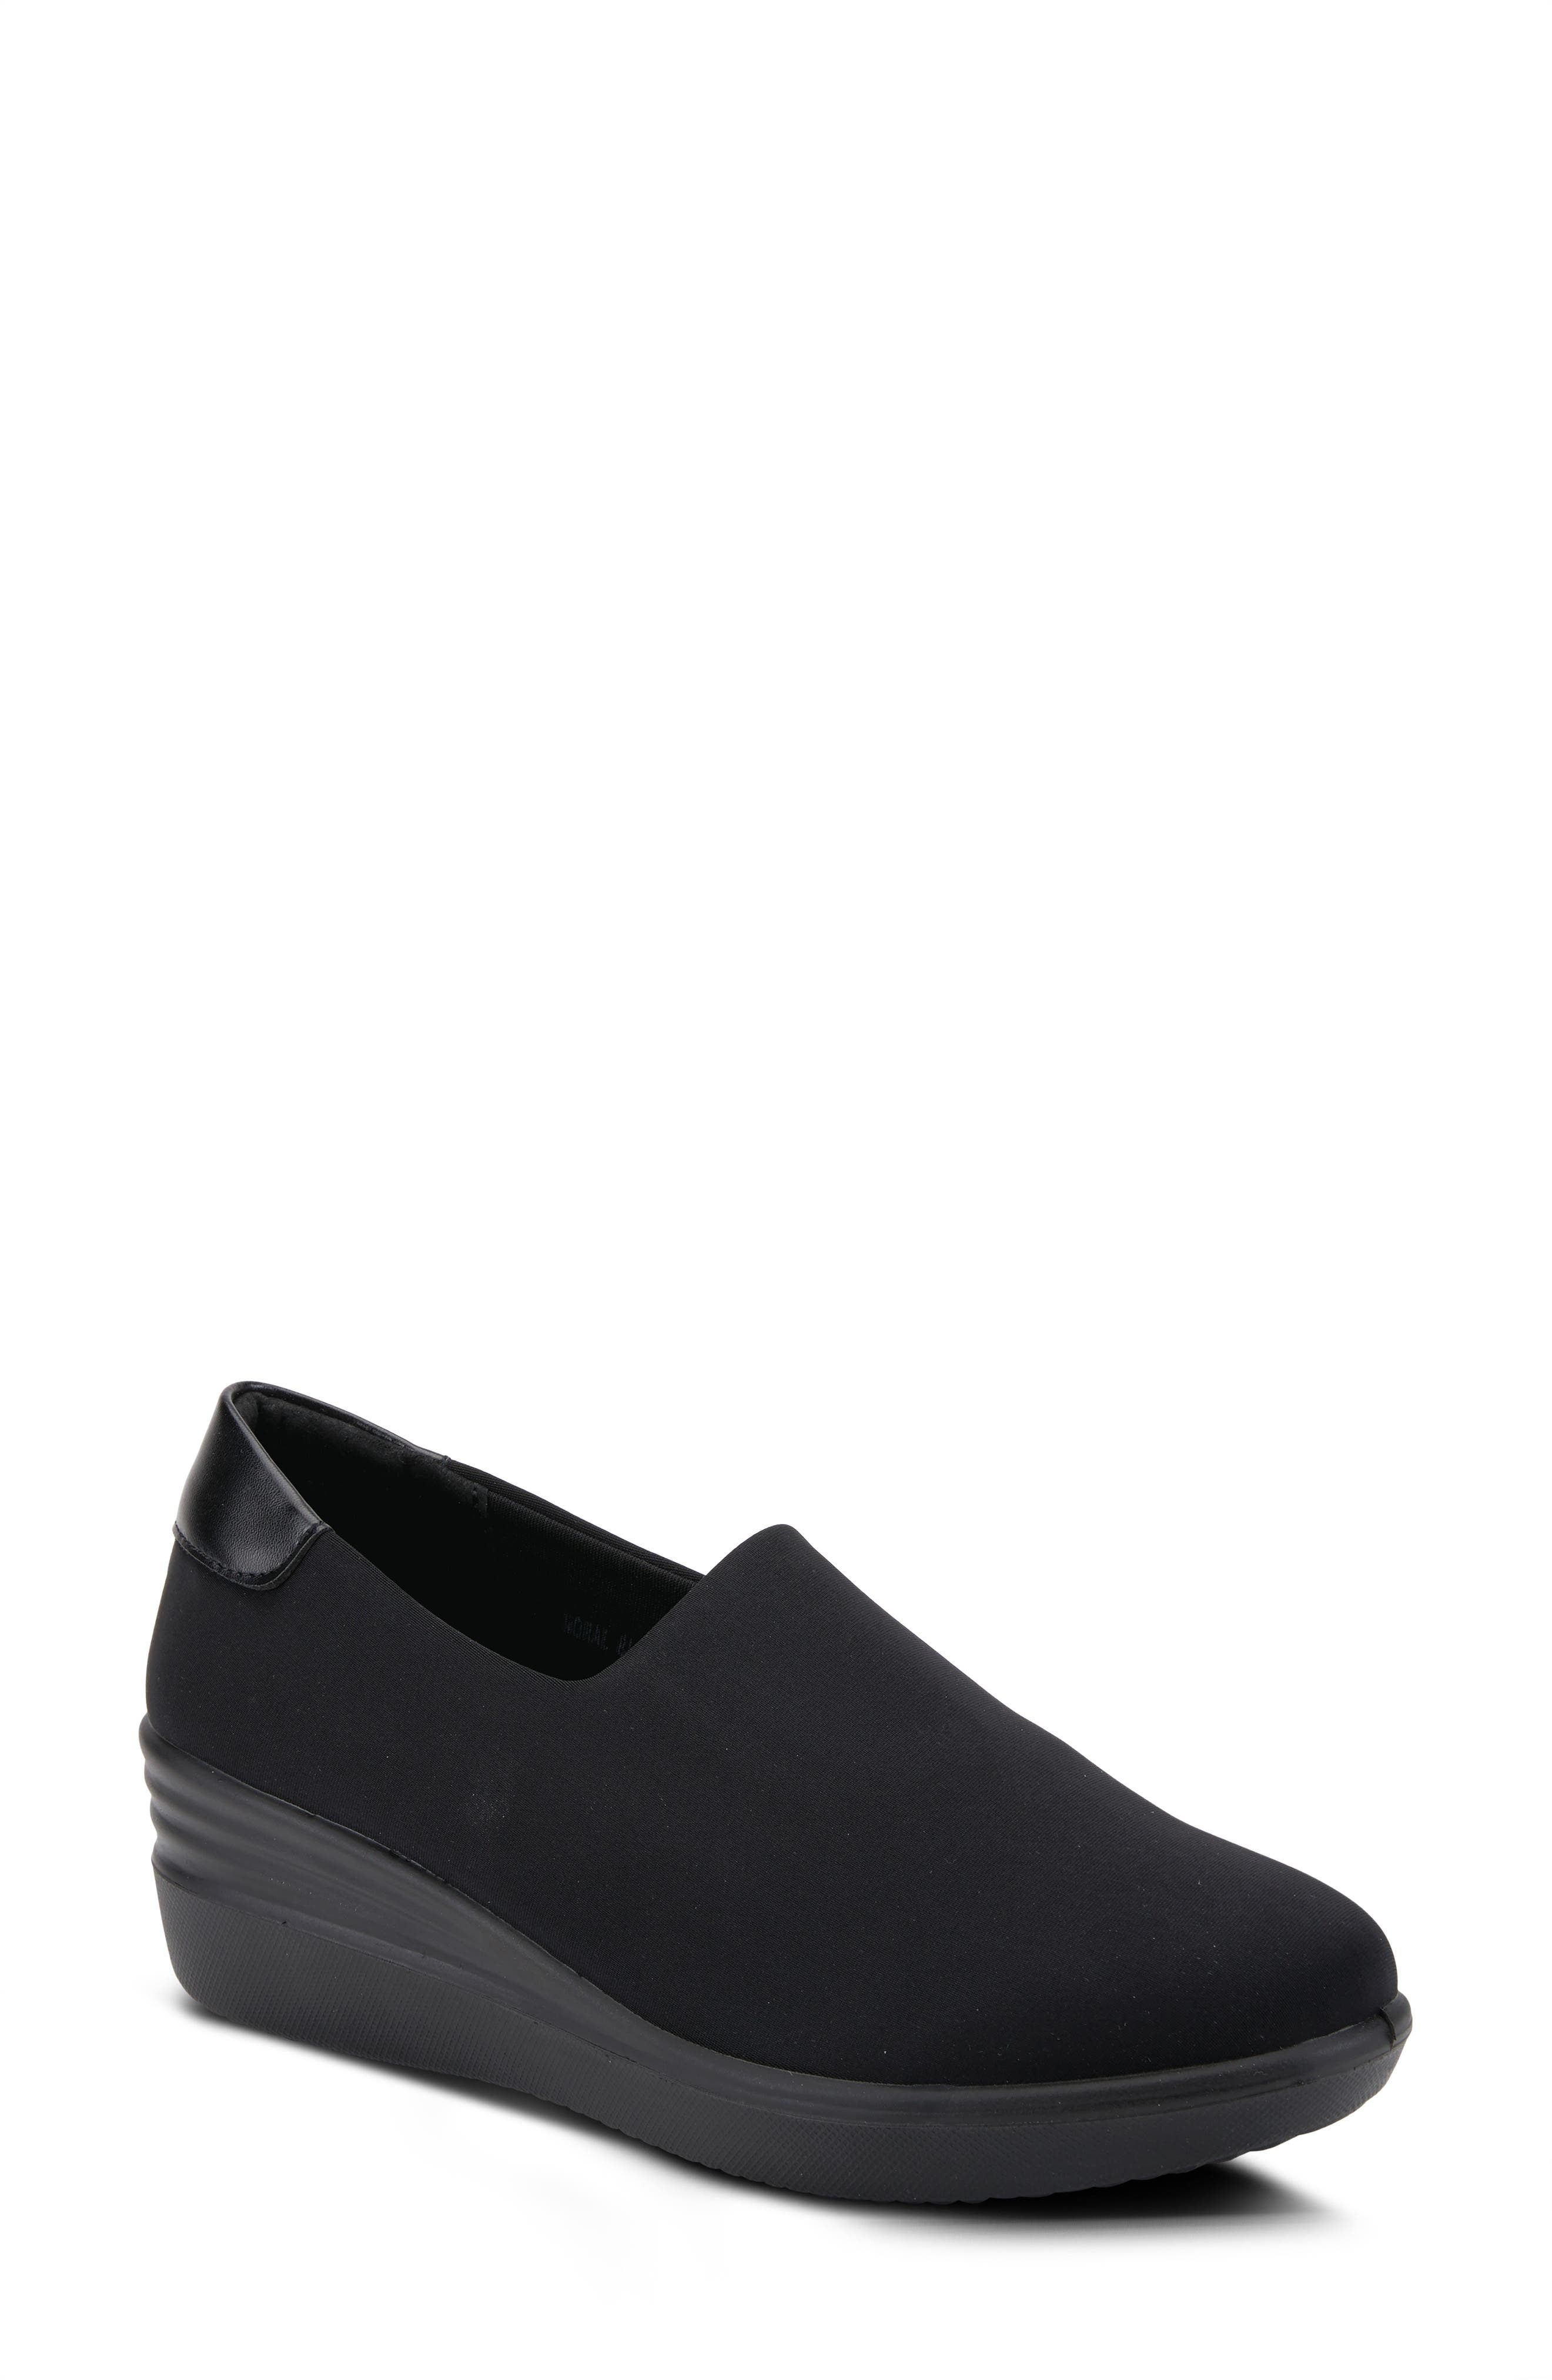 Noral Wedge Shoe